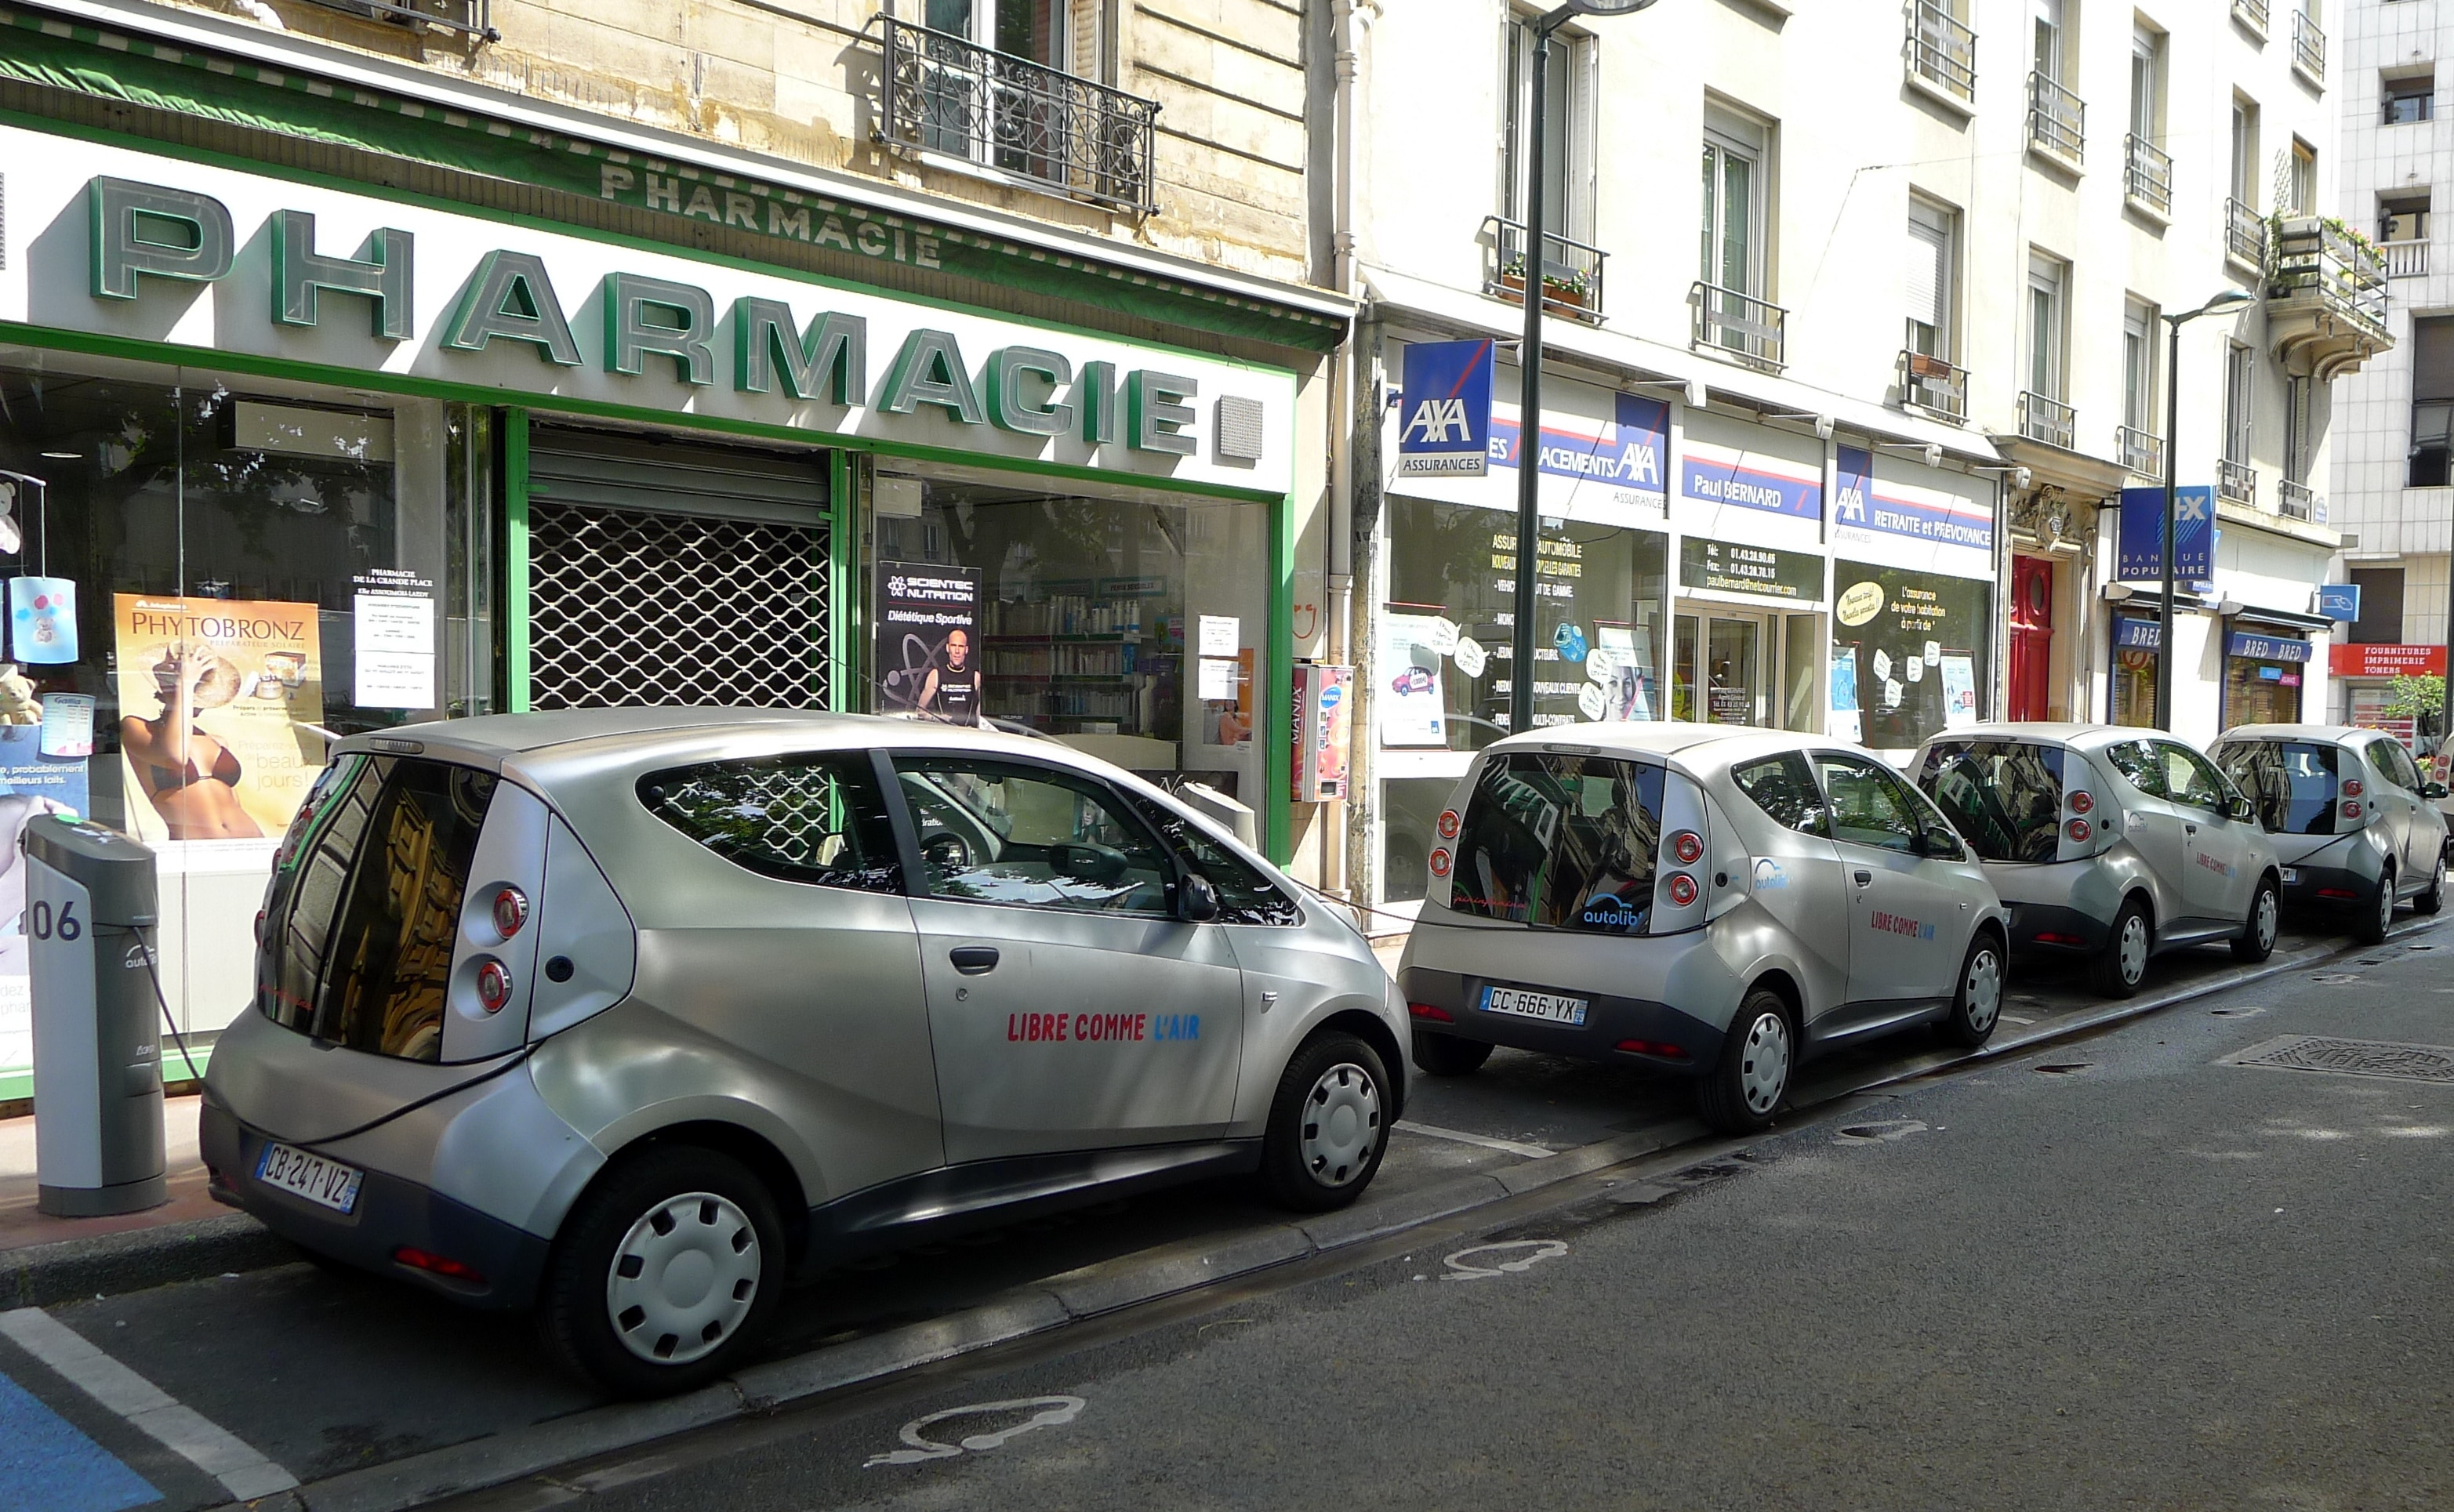 Awesome Autolib Electric Car Sharing In Paris  GAYOT39s Blog